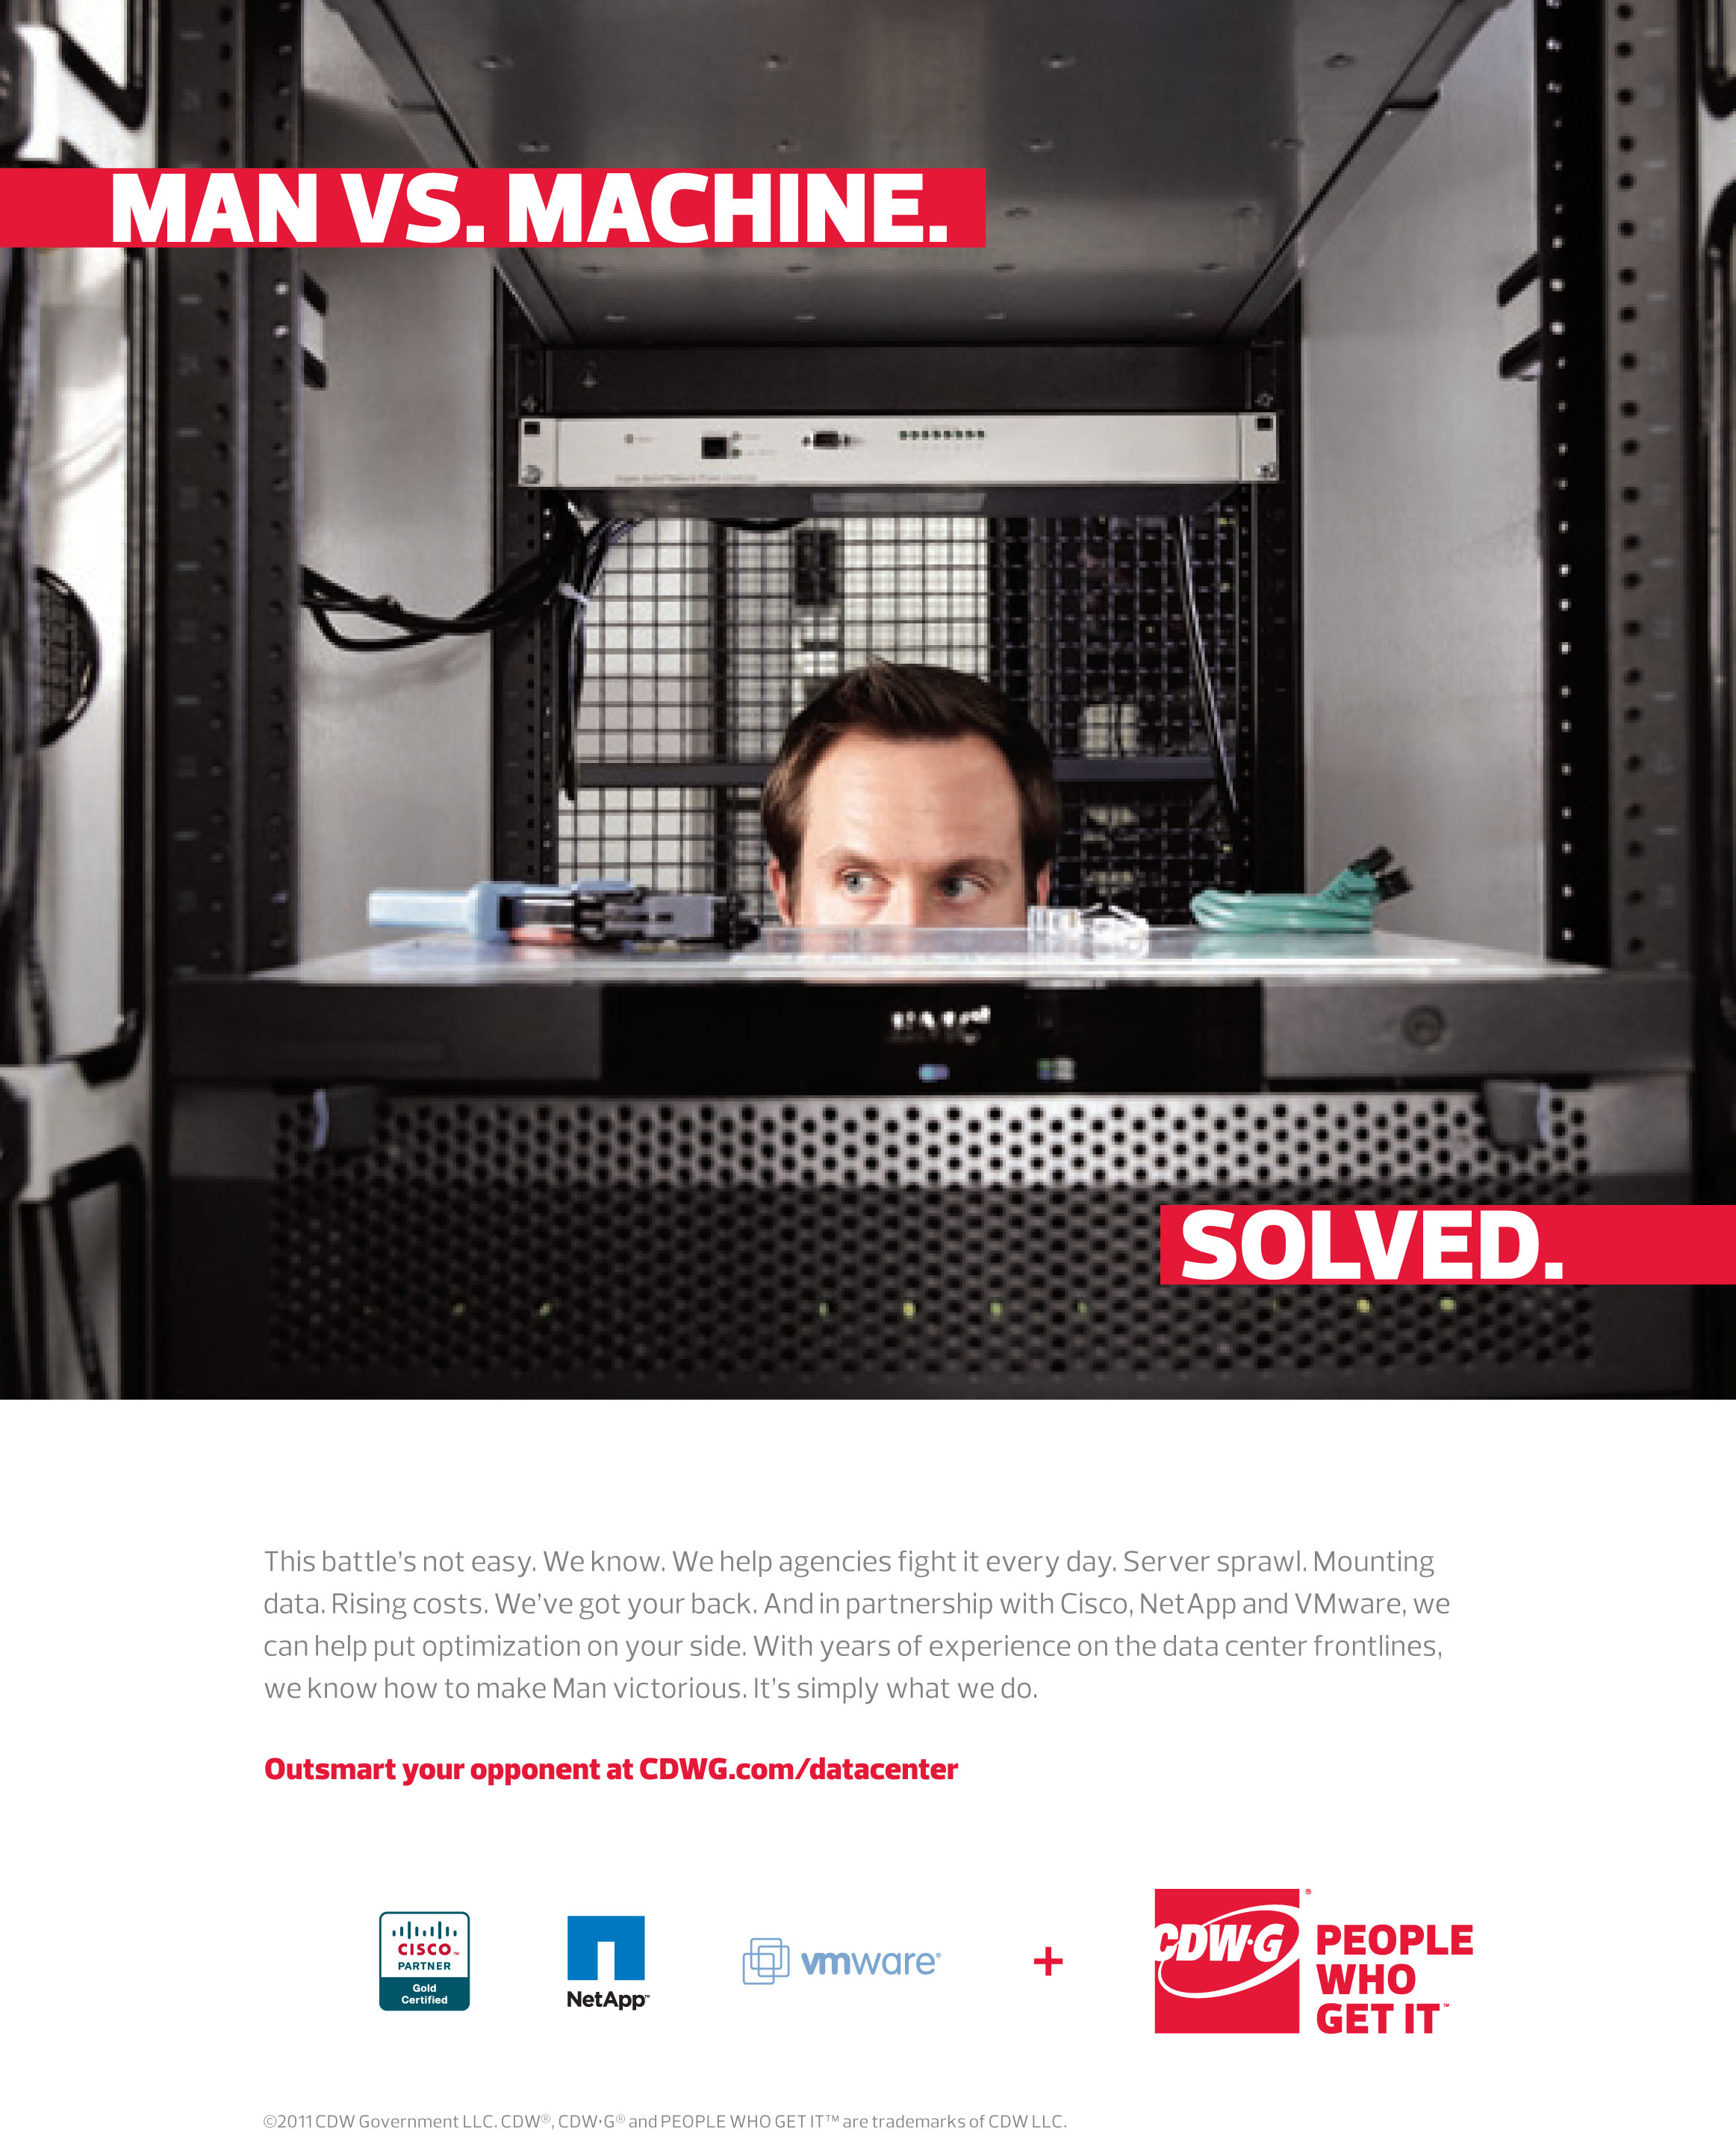 CDW_Print_Man vs Machine.jpg